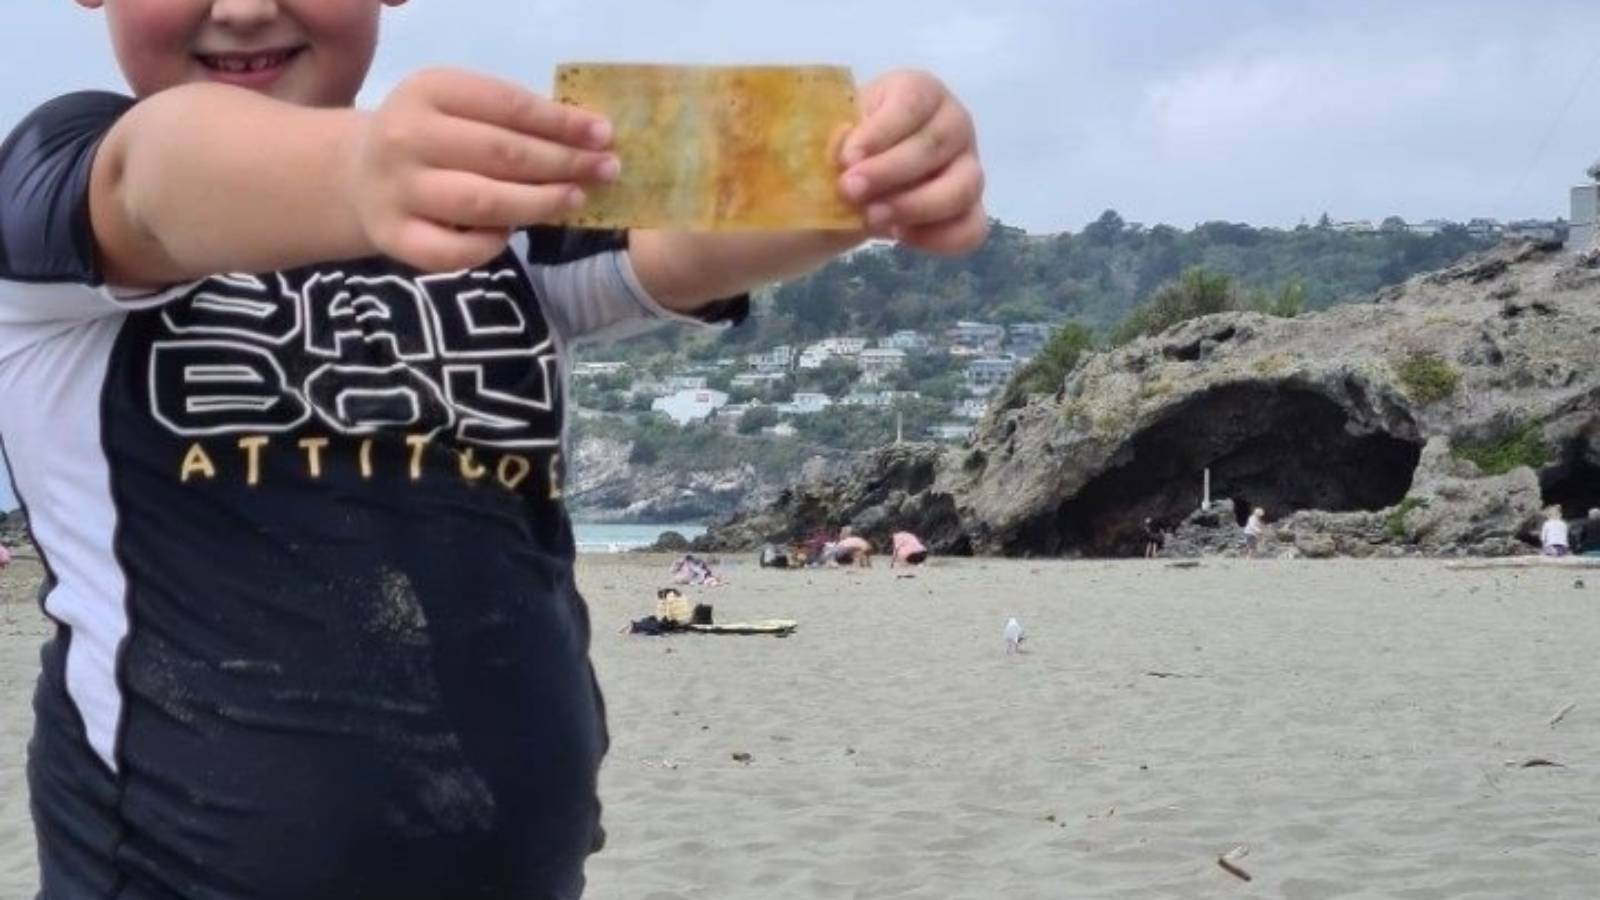 Bidder buys Christchurch boy's $5 note for $1000, in memory of his late wife